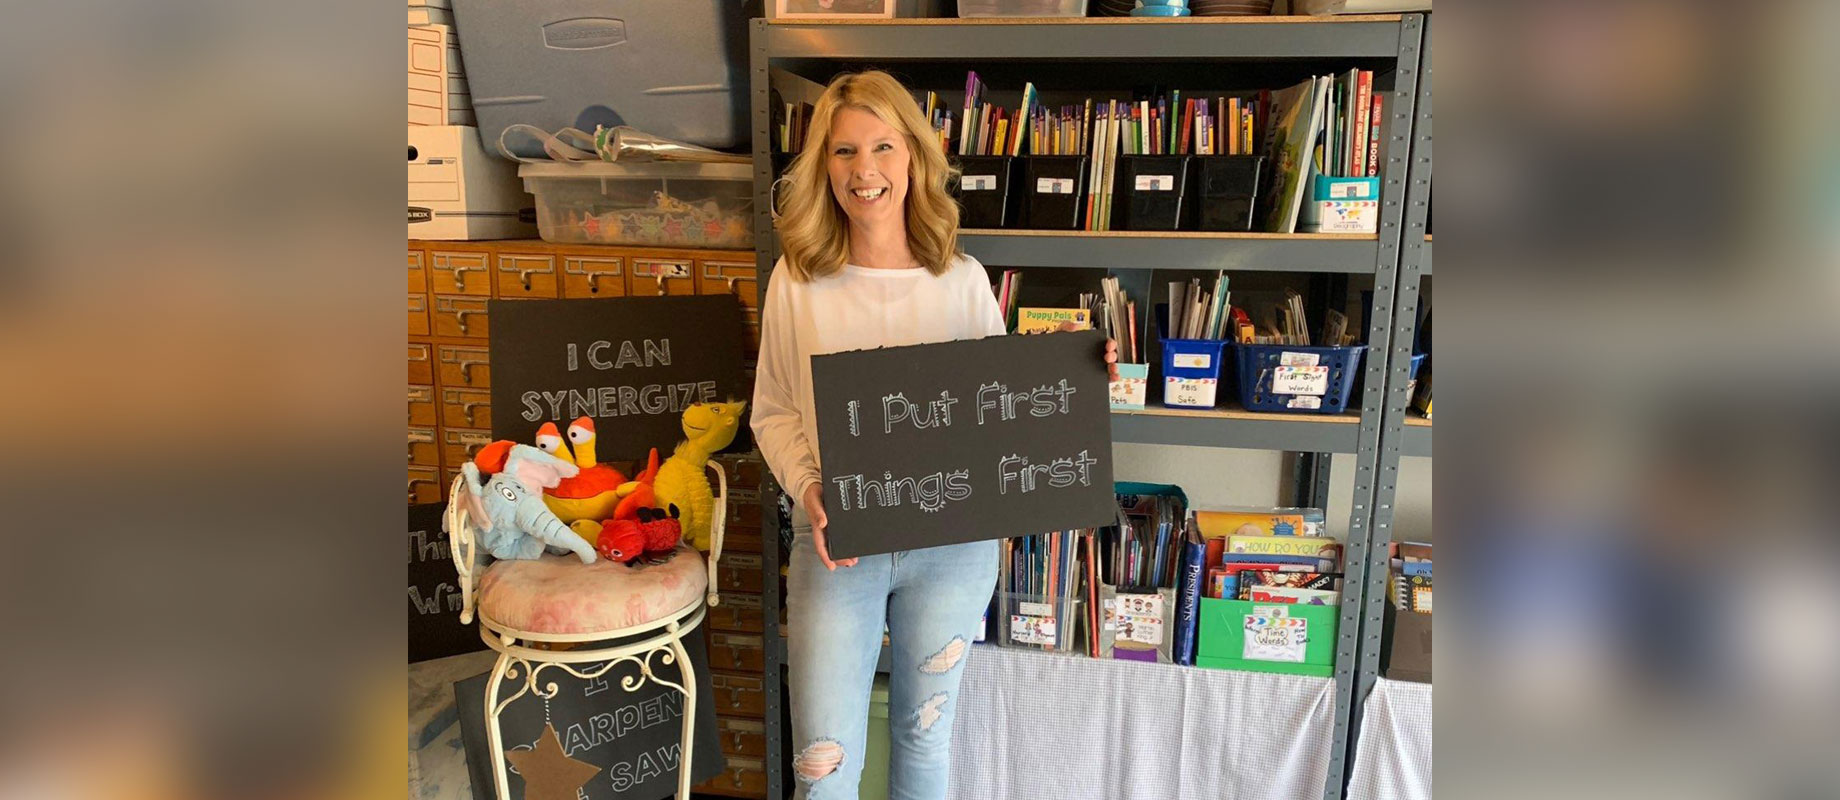 Simpson College alumnus Amy Rowe '12 poses in her garage